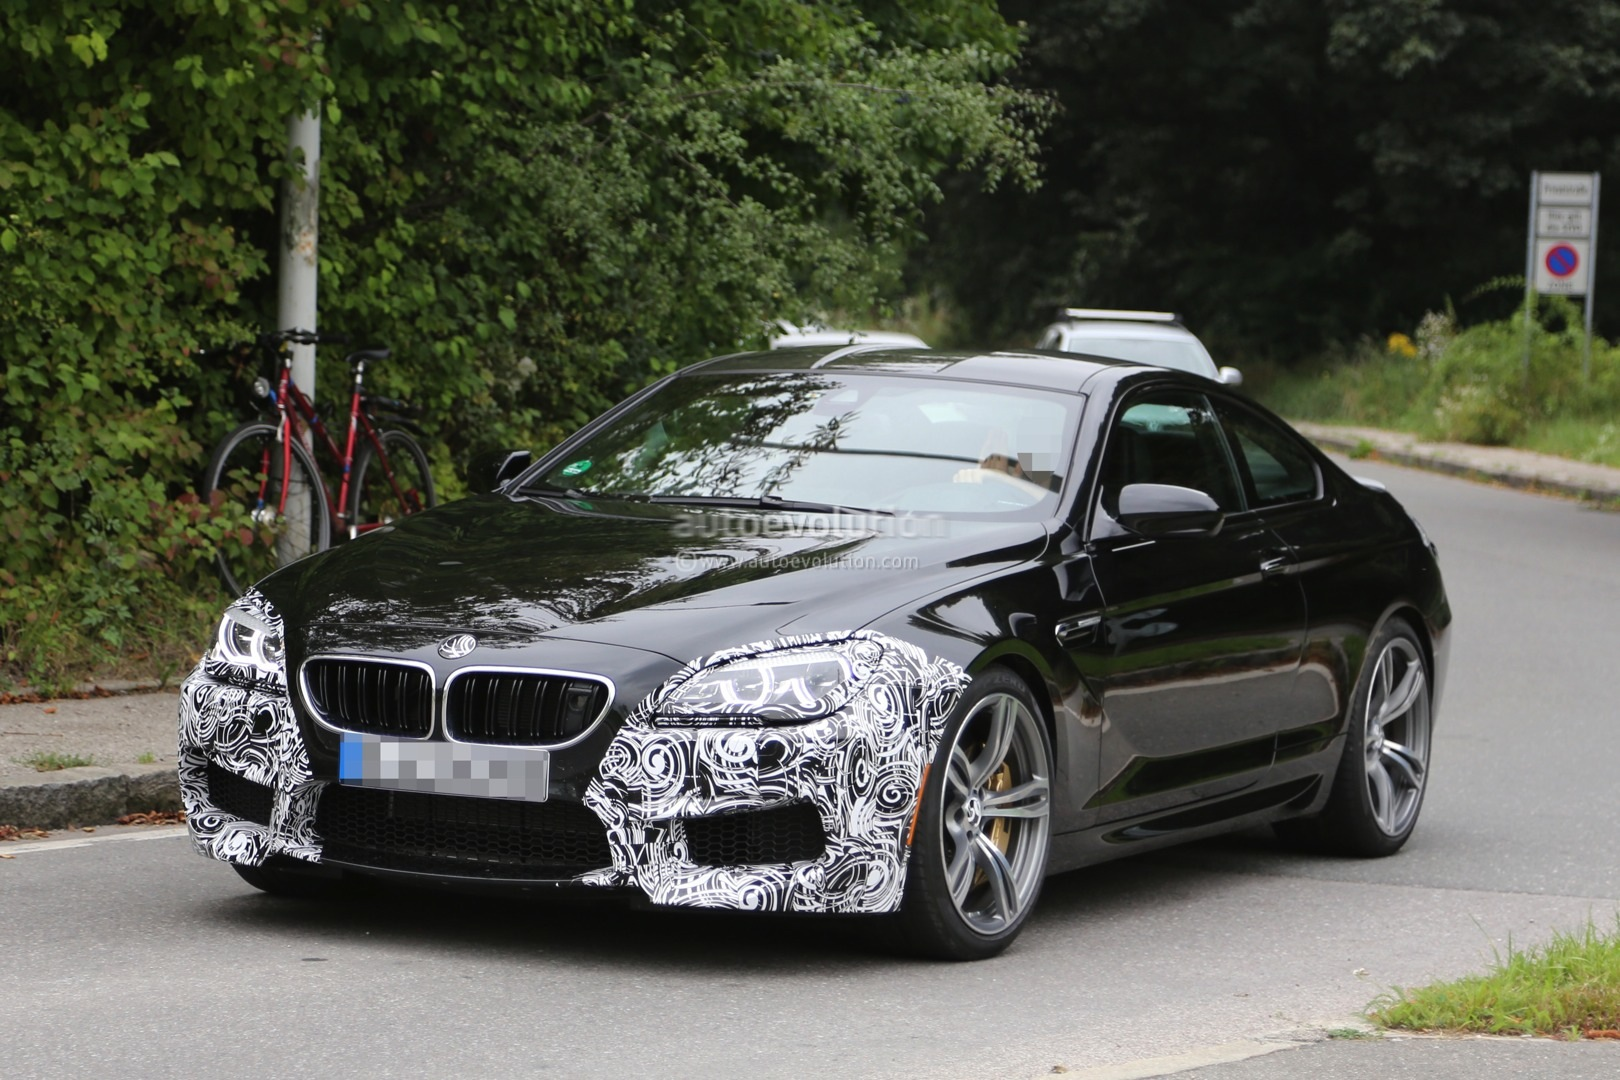 BMW M6 Facelift Spied Testing in Production Guise ...